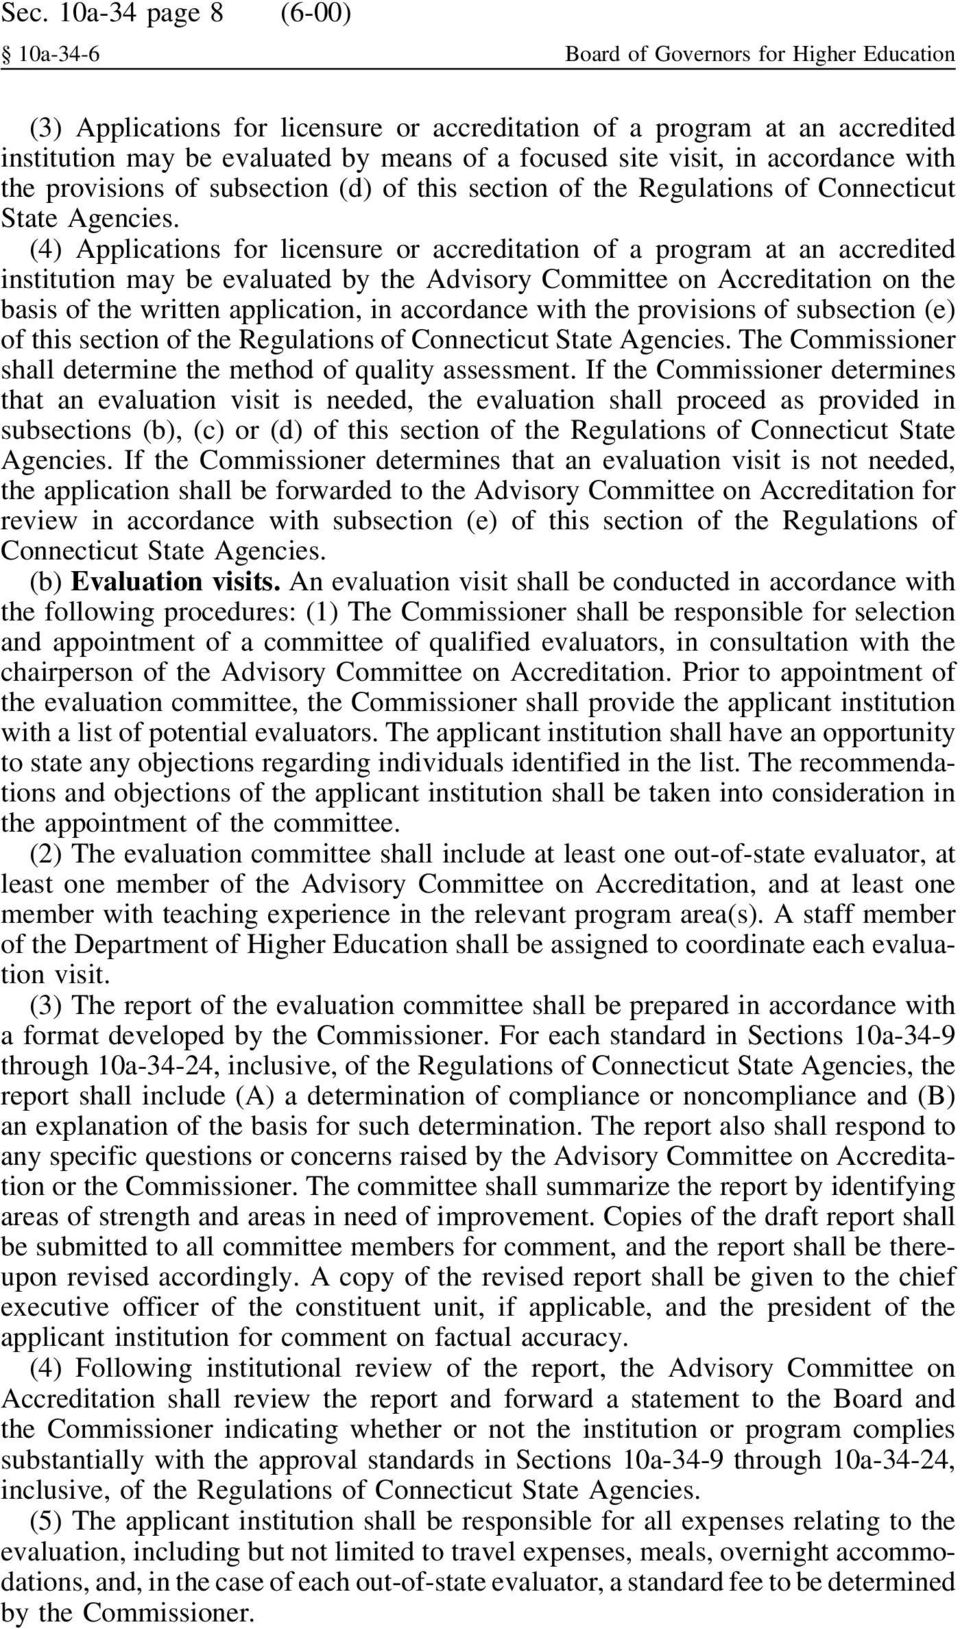 (4) Applications for licensure or accreditation of a program at an accredited institution may be evaluated by the Advisory Committee on Accreditation on the basis of the written application, in